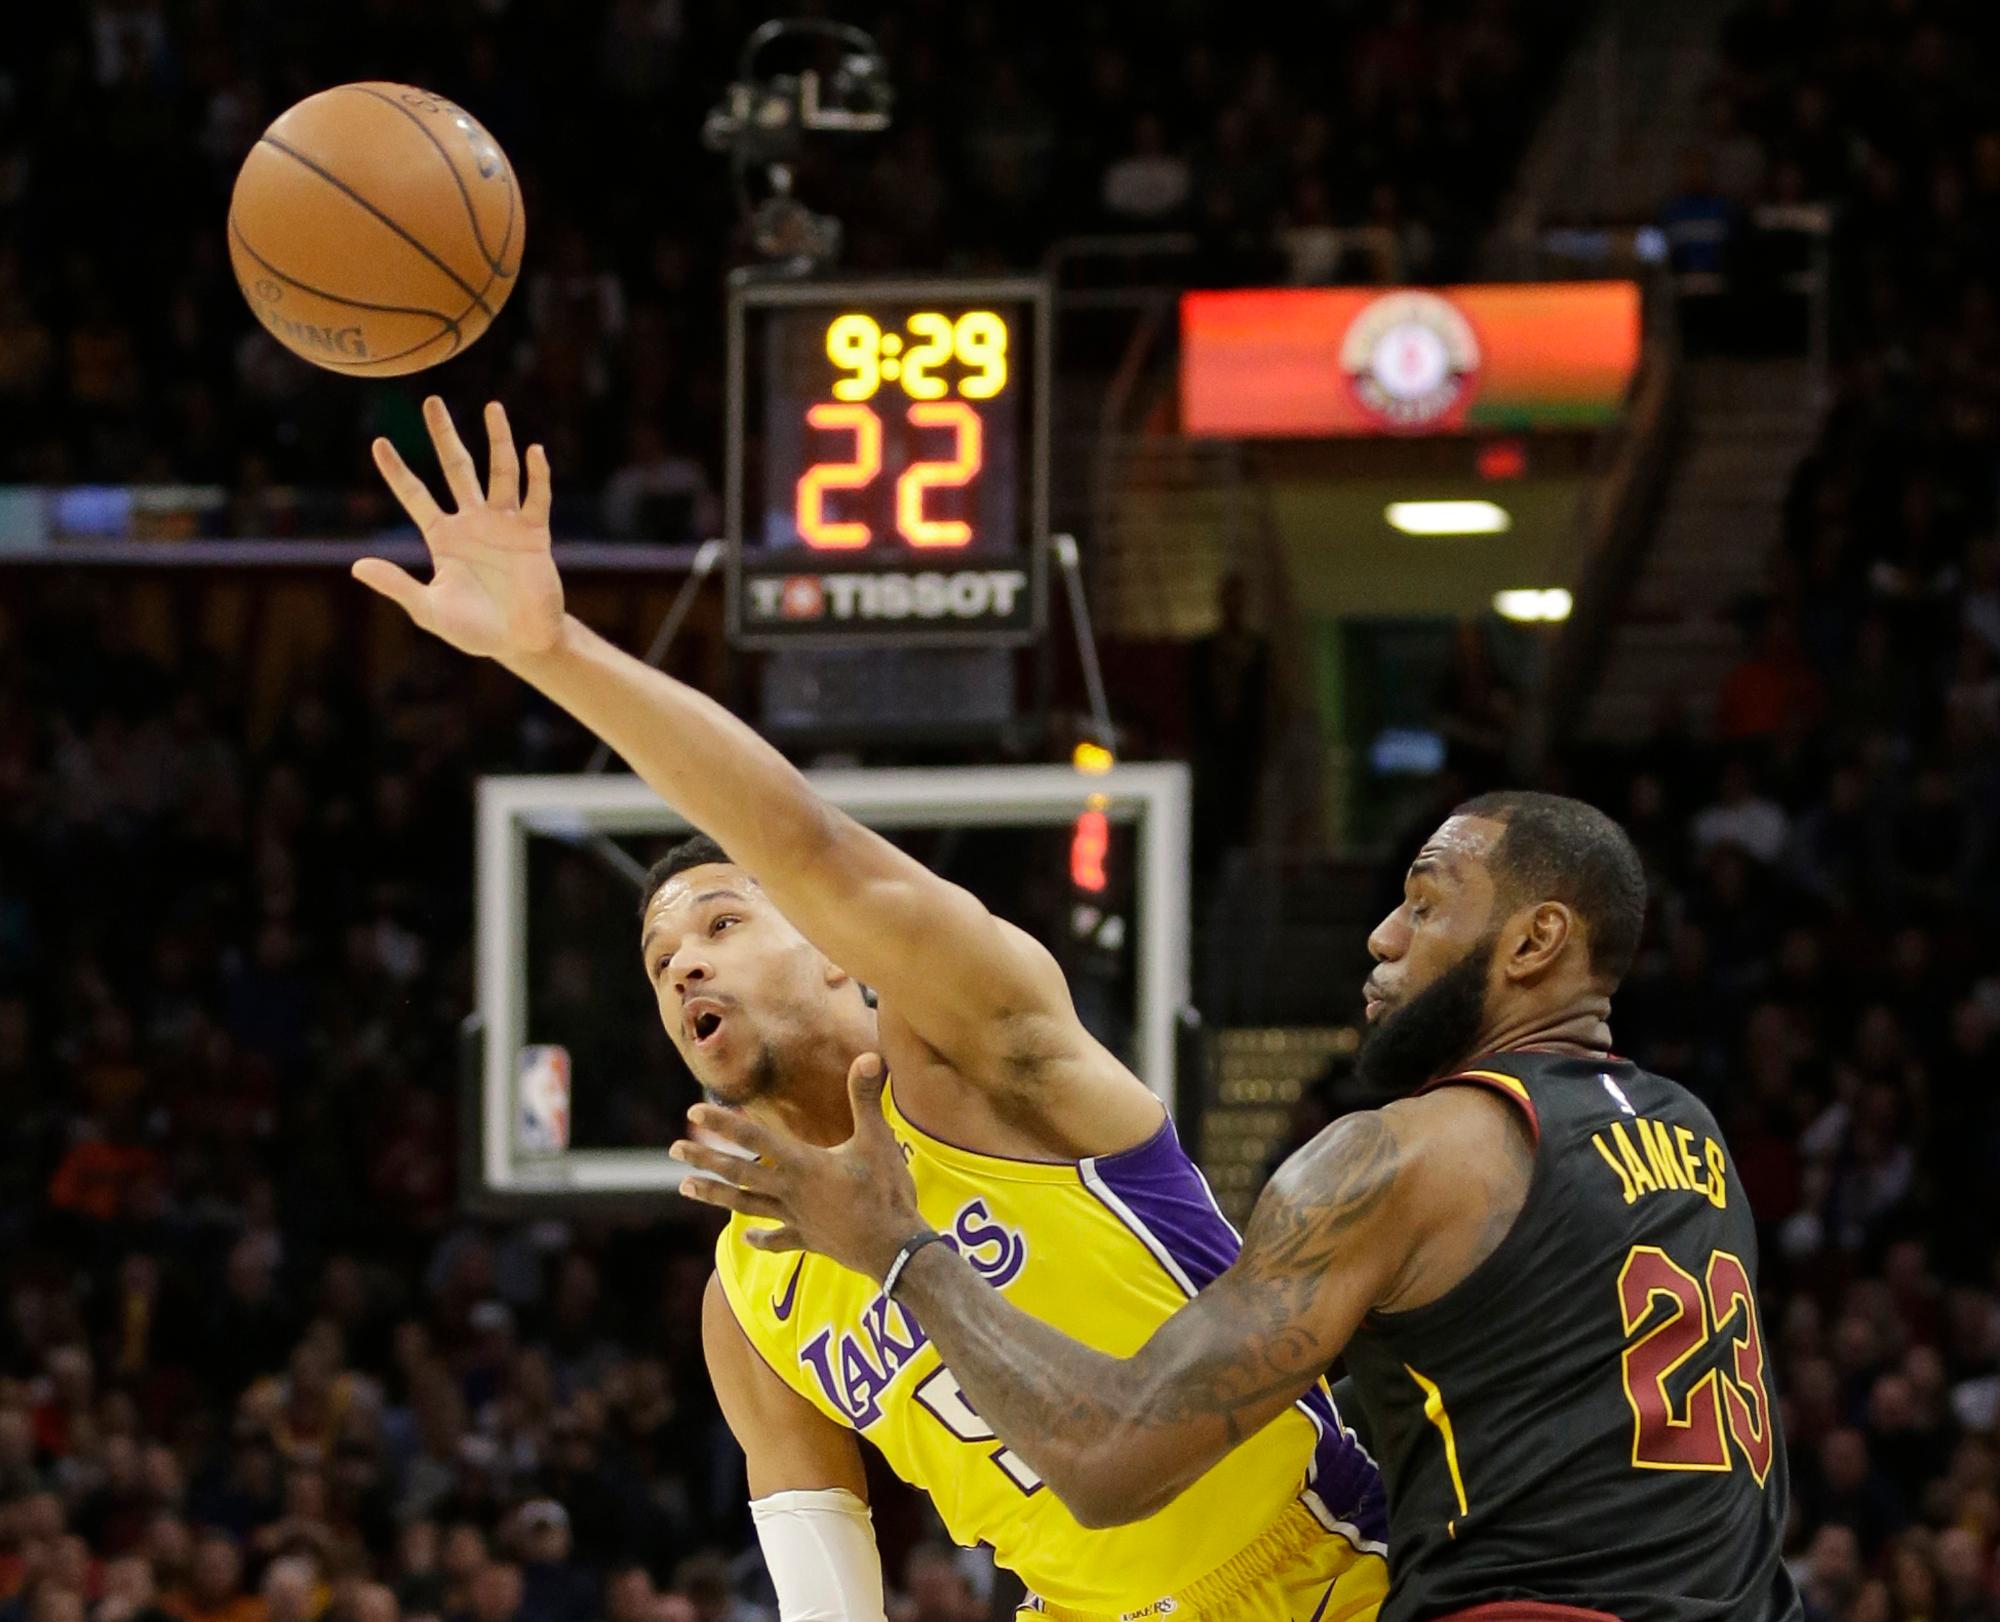 Los Angeles Lakers' Josh Hart (5) grabs a pass ahead of Cleveland Cavaliers' LeBron James (23) in the first half of an NBA basketball game, Thursday, Dec. 14, 2017, in Cleveland. (AP Photo/Tony Dejak)